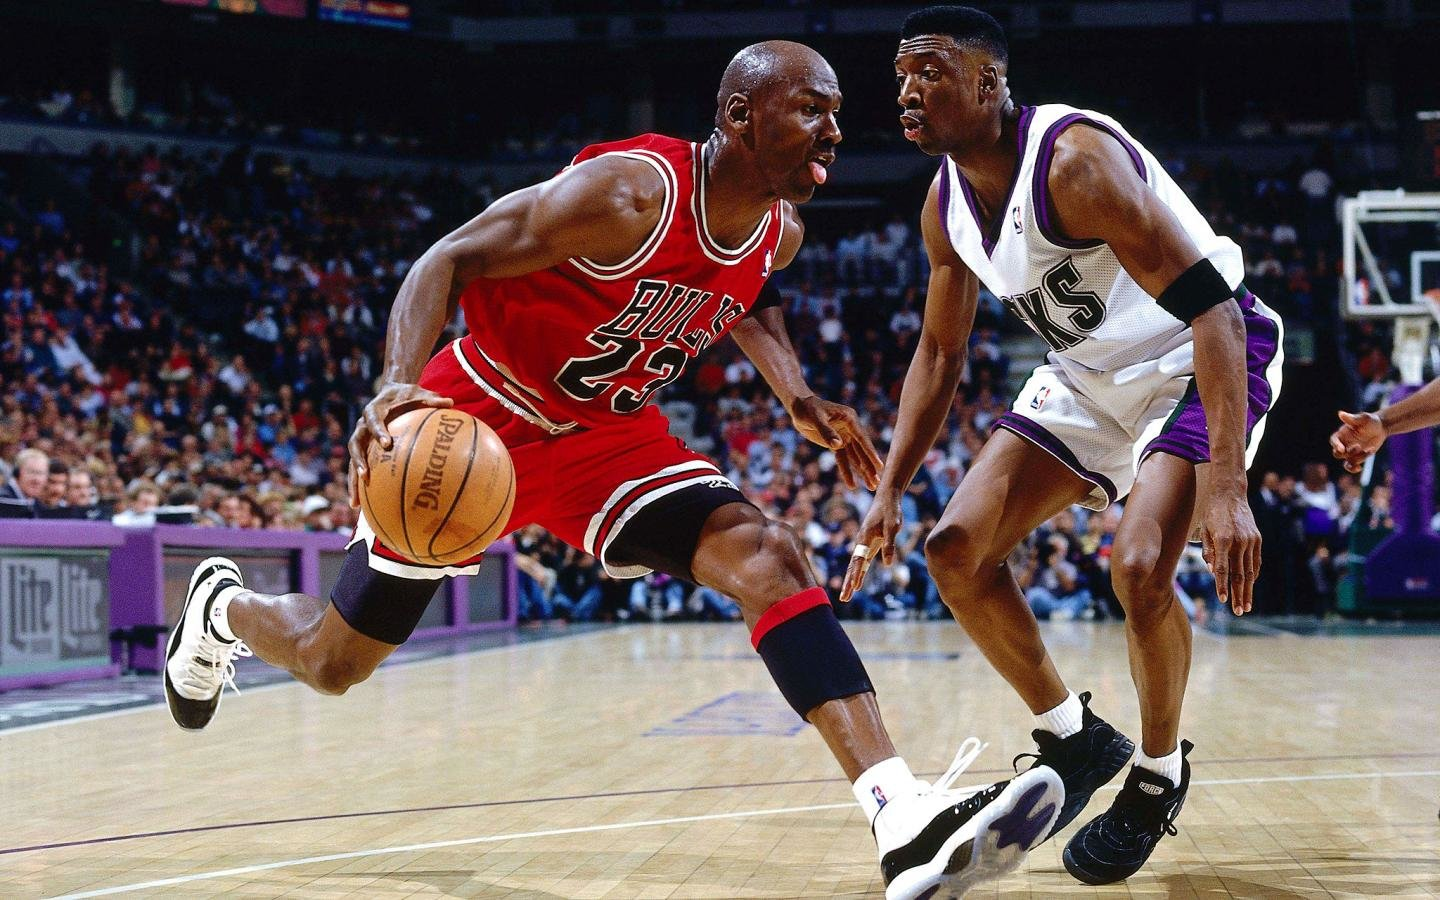 Free Michael Jordan high quality wallpaper ID:235918 for hd 1440x900 PC